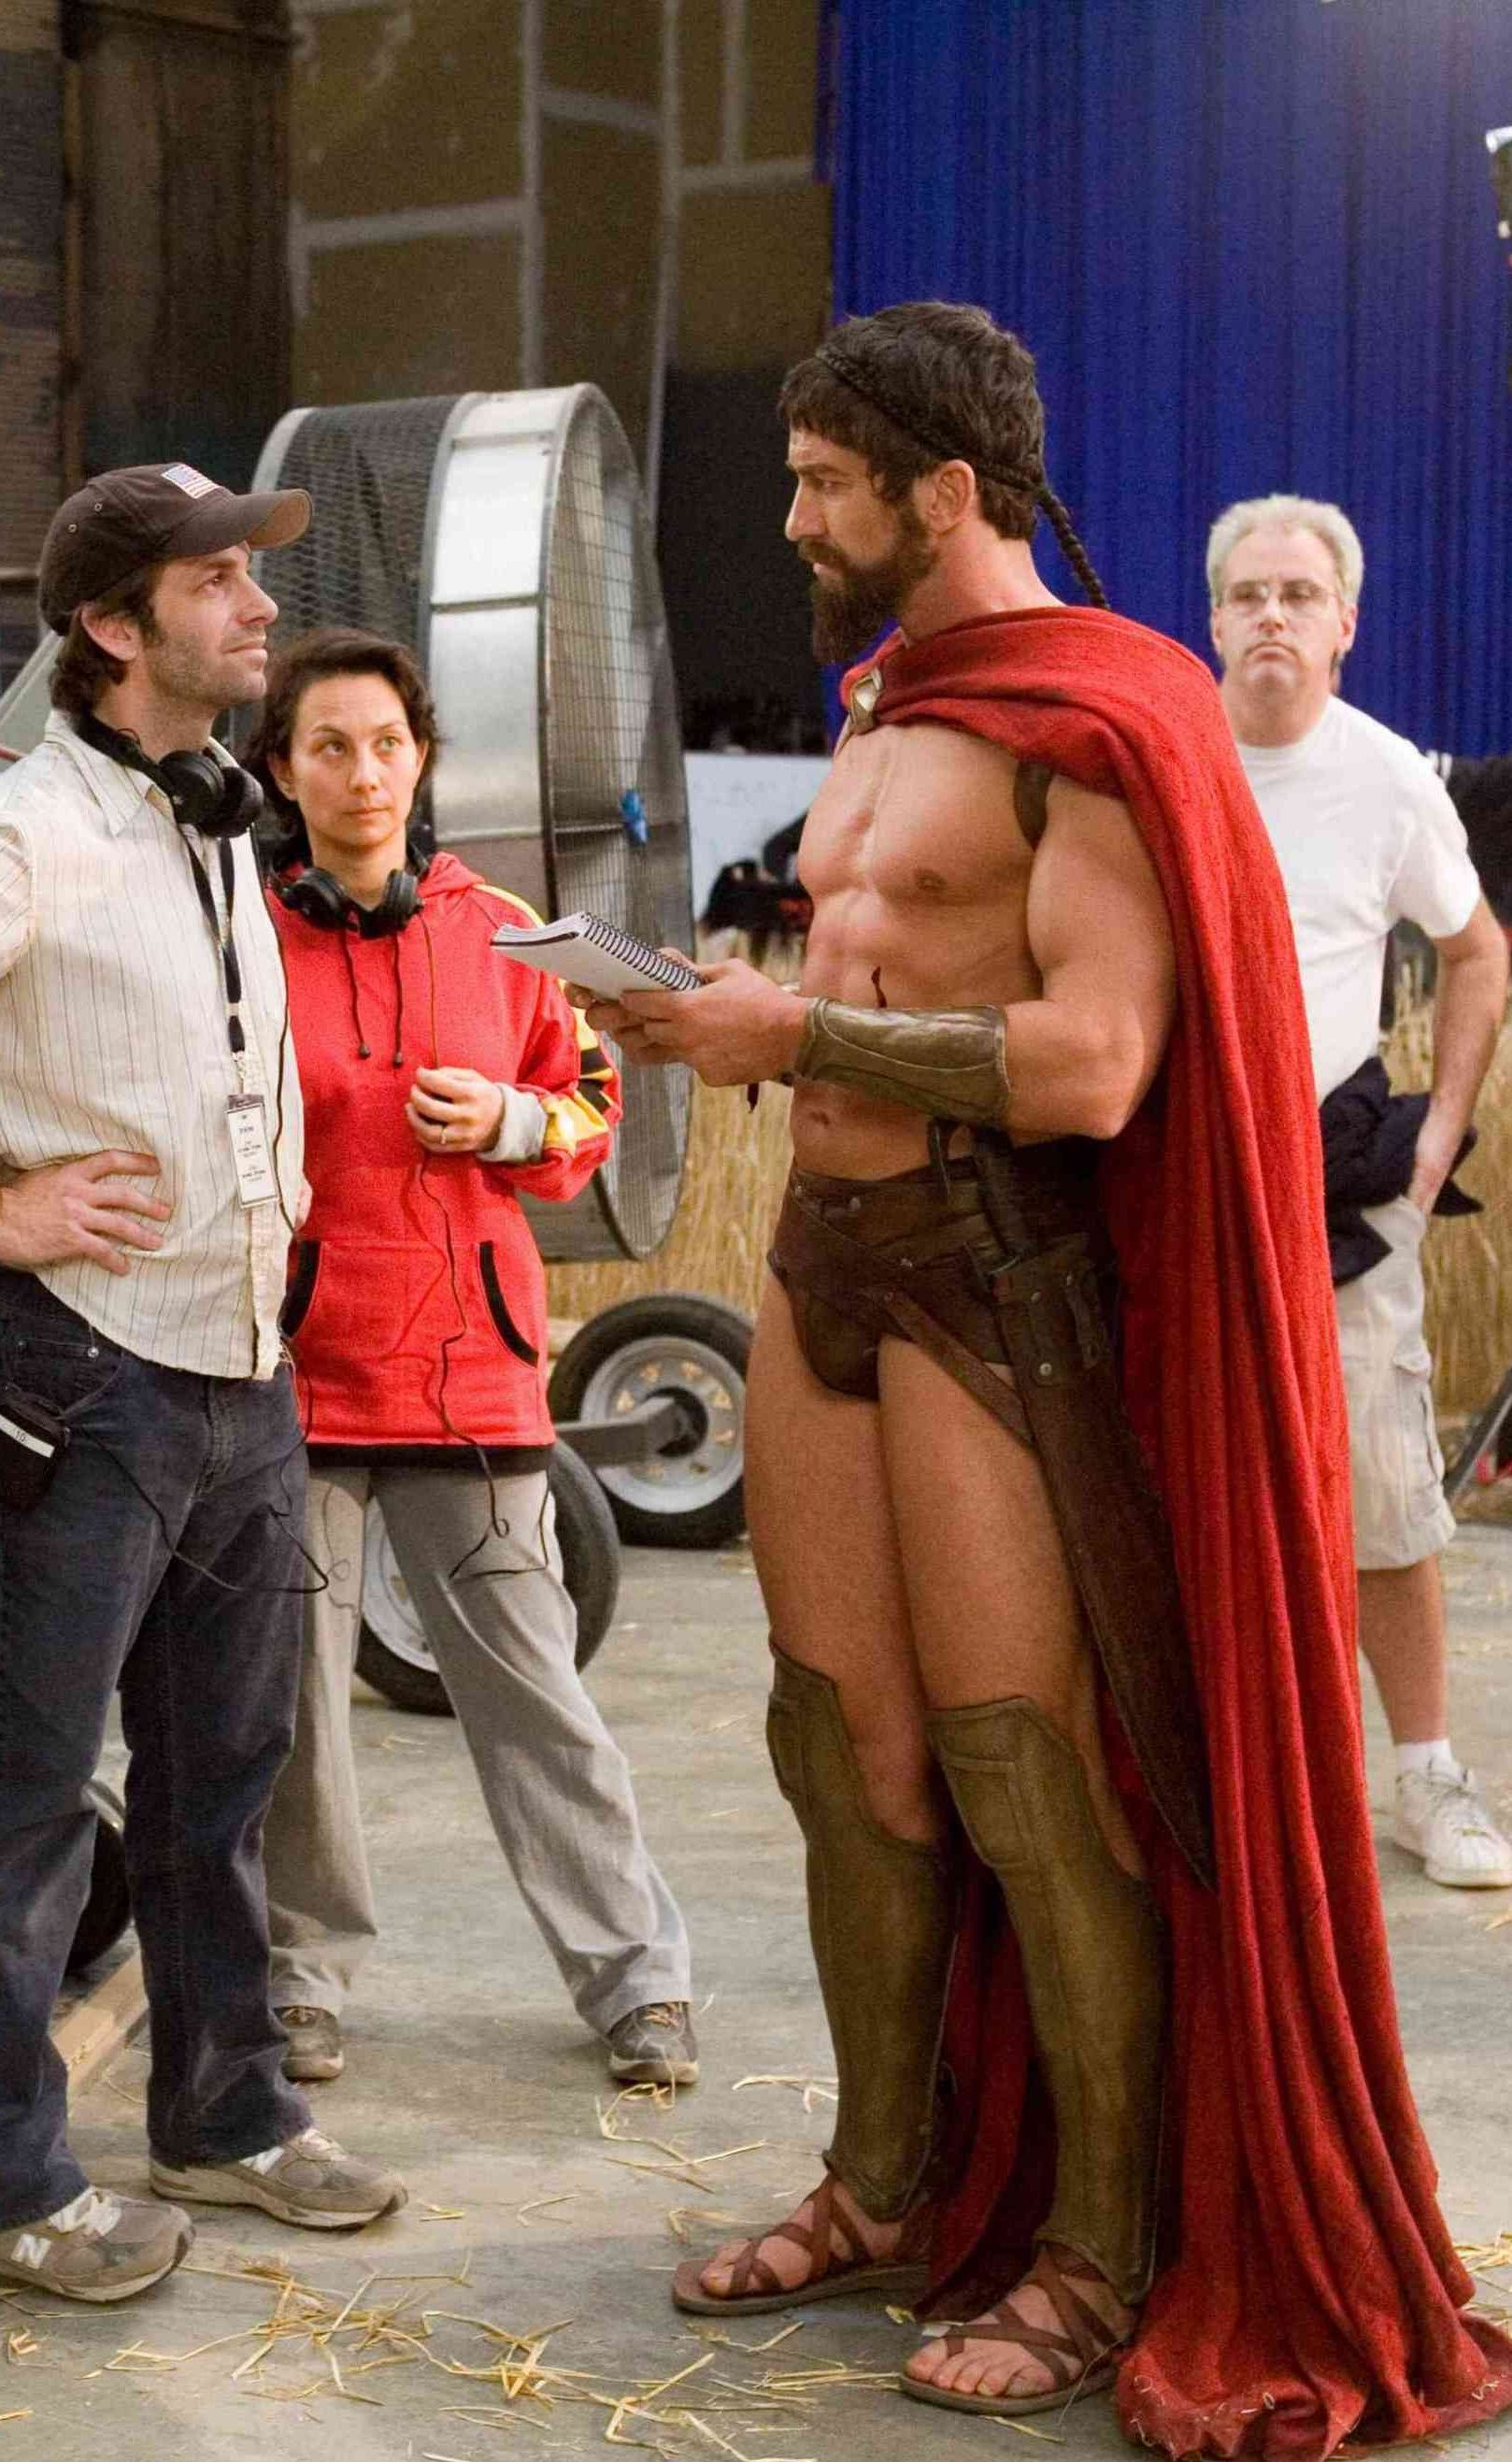 Gerard Butler -Compared to the other people there; he looks huge!